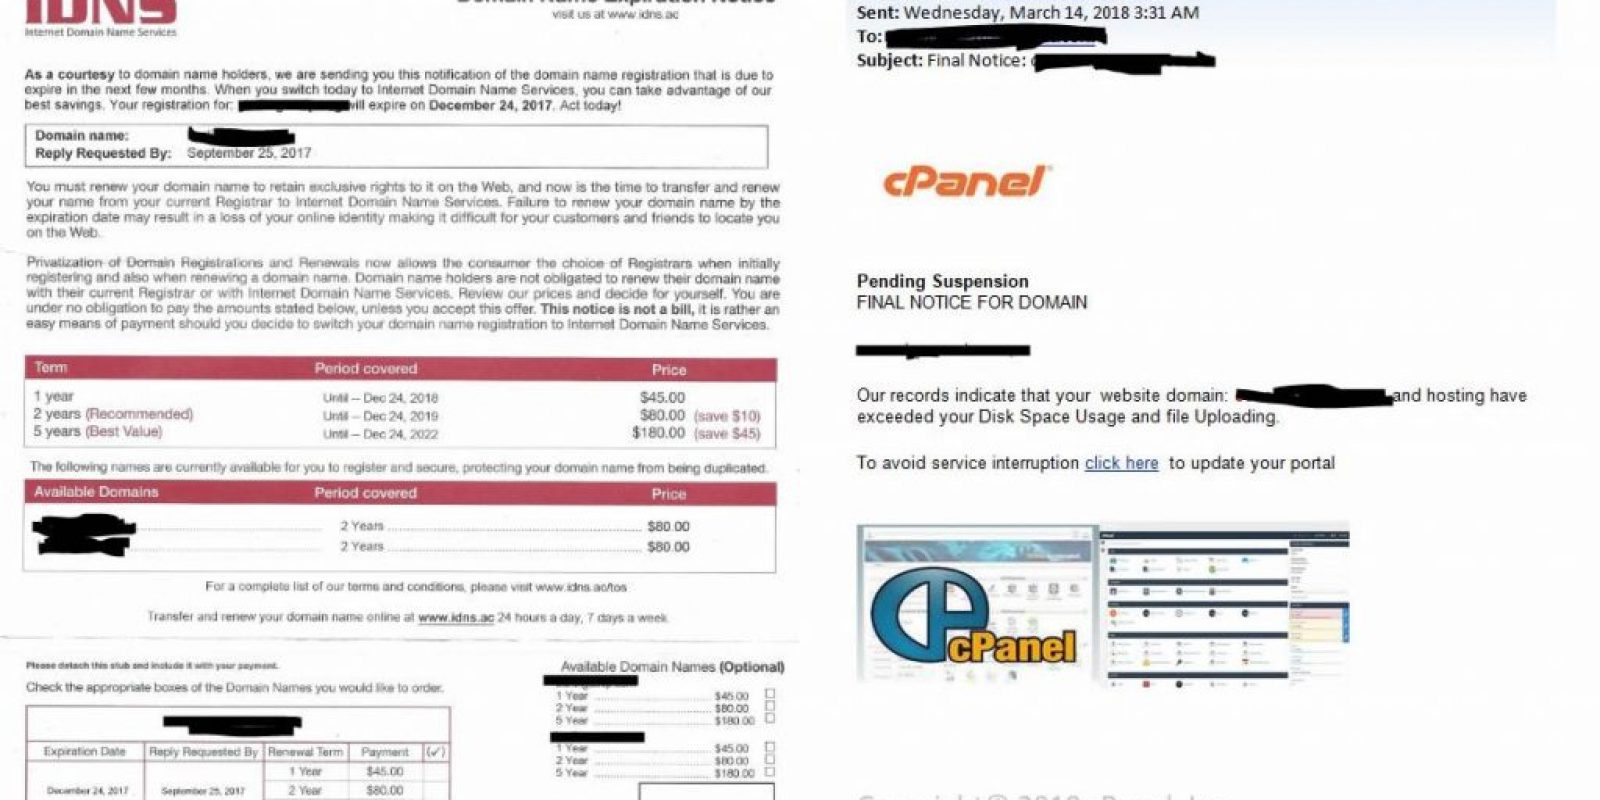 idns-and-cpanel-scams